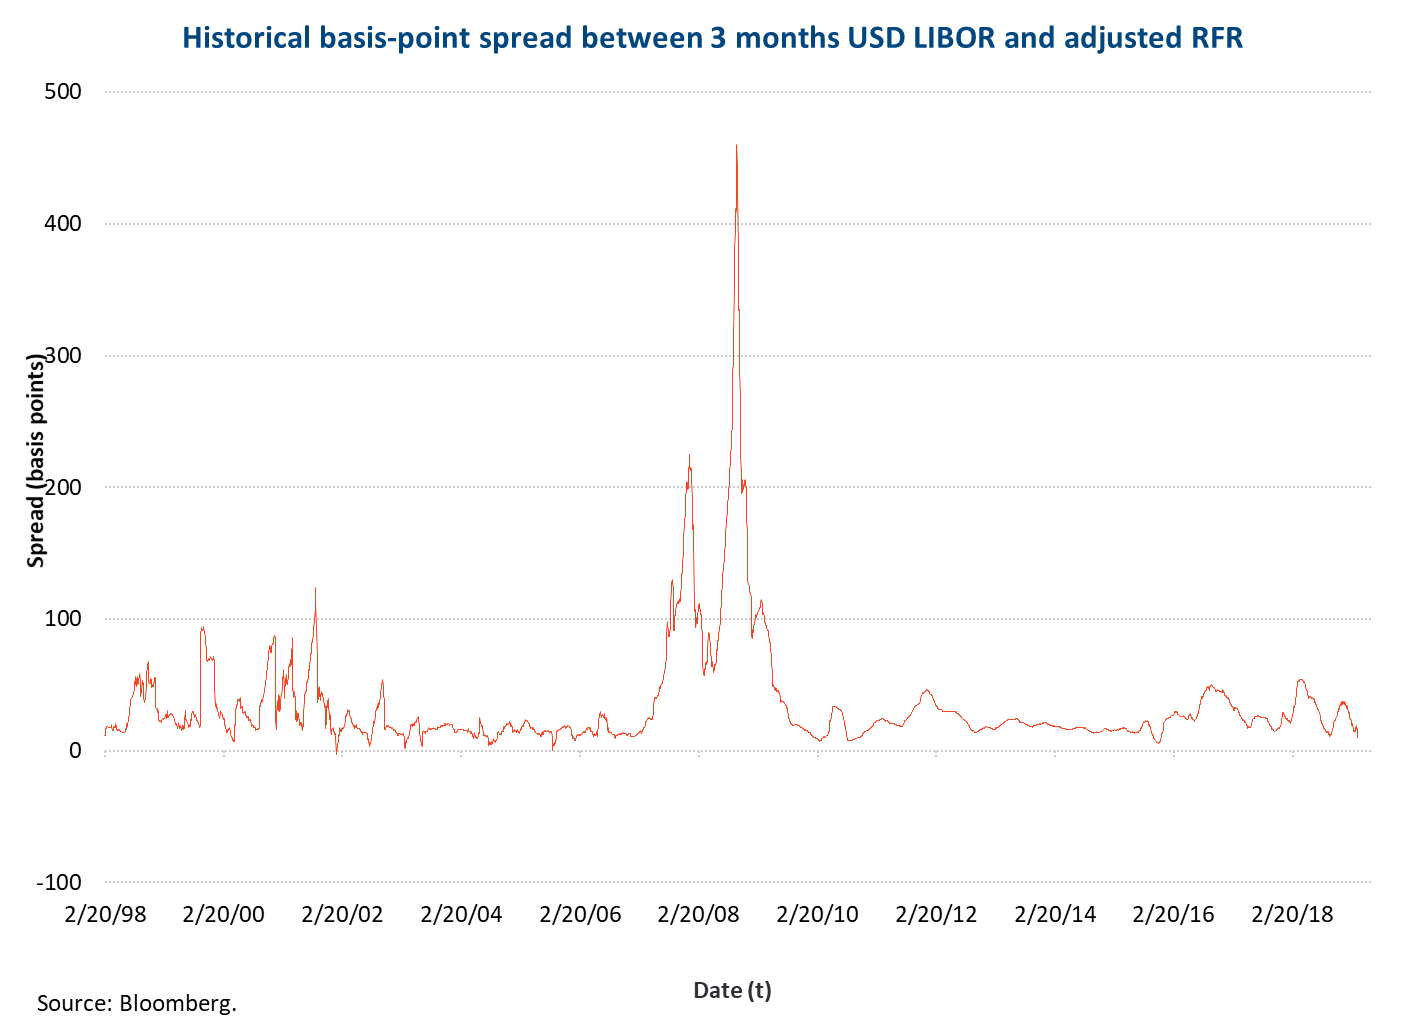 Historical basis point spread 3M USD LIBOR and RFR